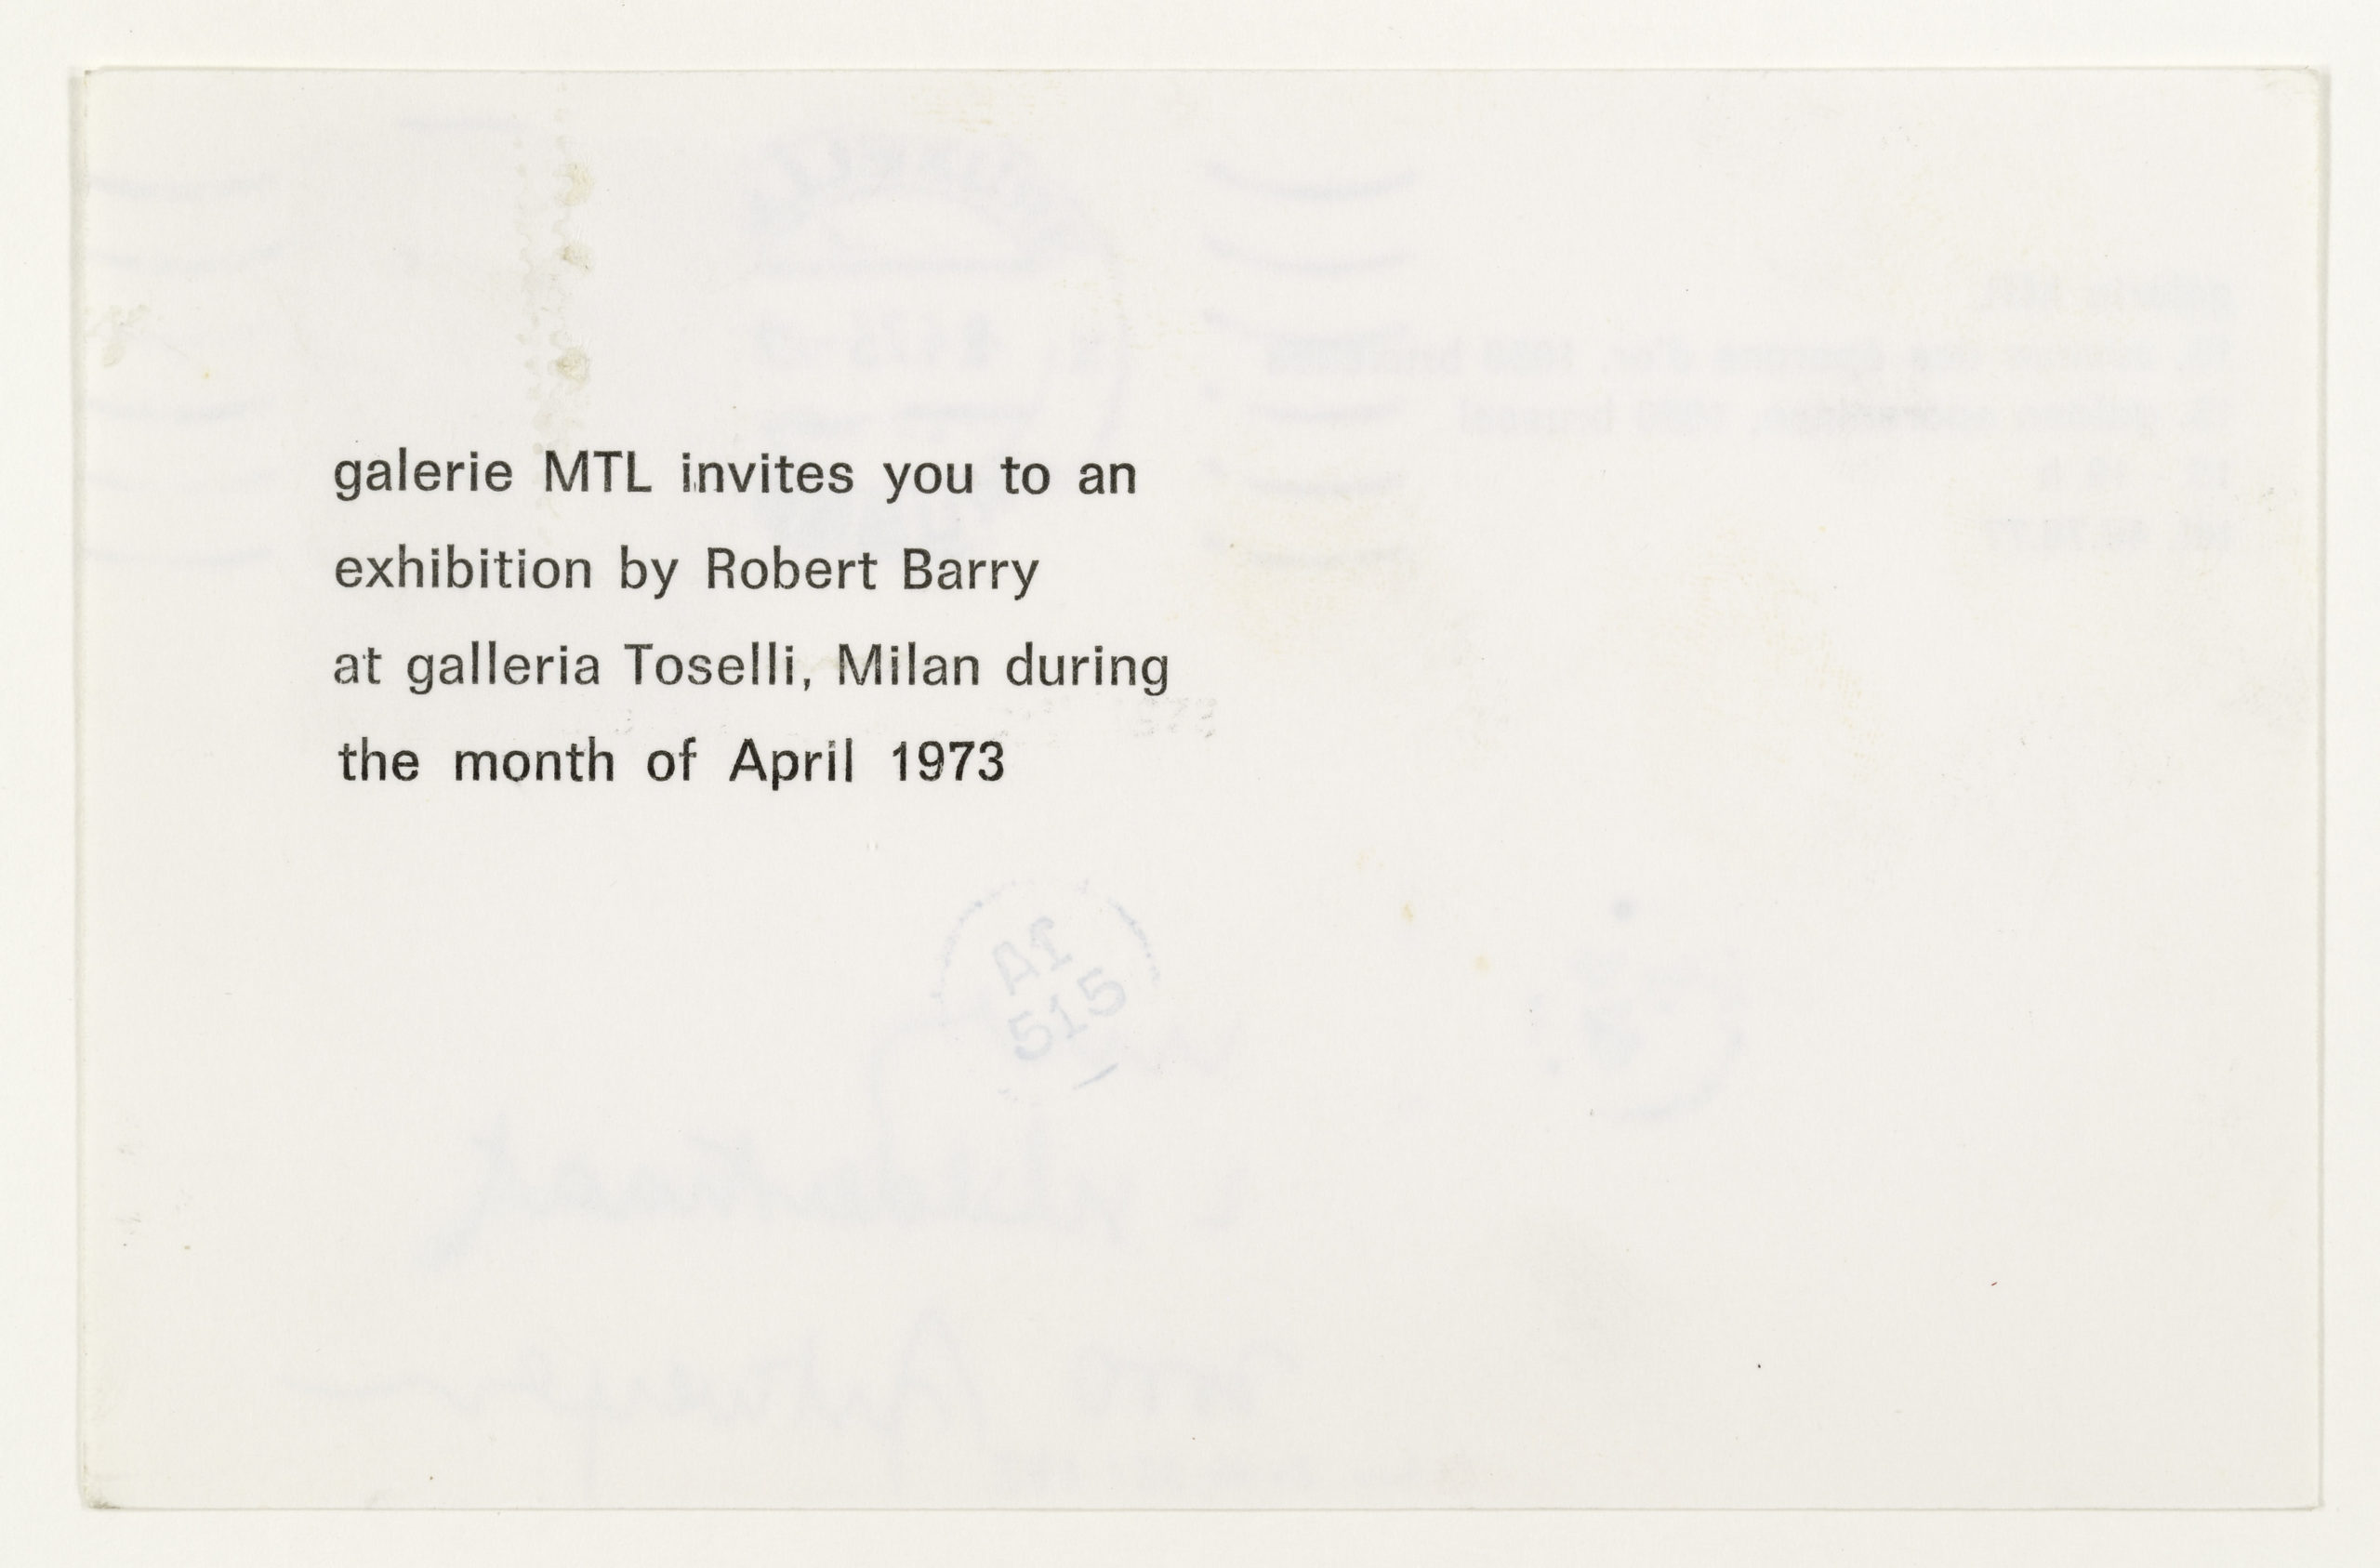 Robert Barry, Invitation Project, MTL Brussels, Belgium invites to Galleria Toselli, Milan, March 1973 (Invitation); Sammlung Marzona, Kunstbibliothek – Staatliche Museen zu Berlin